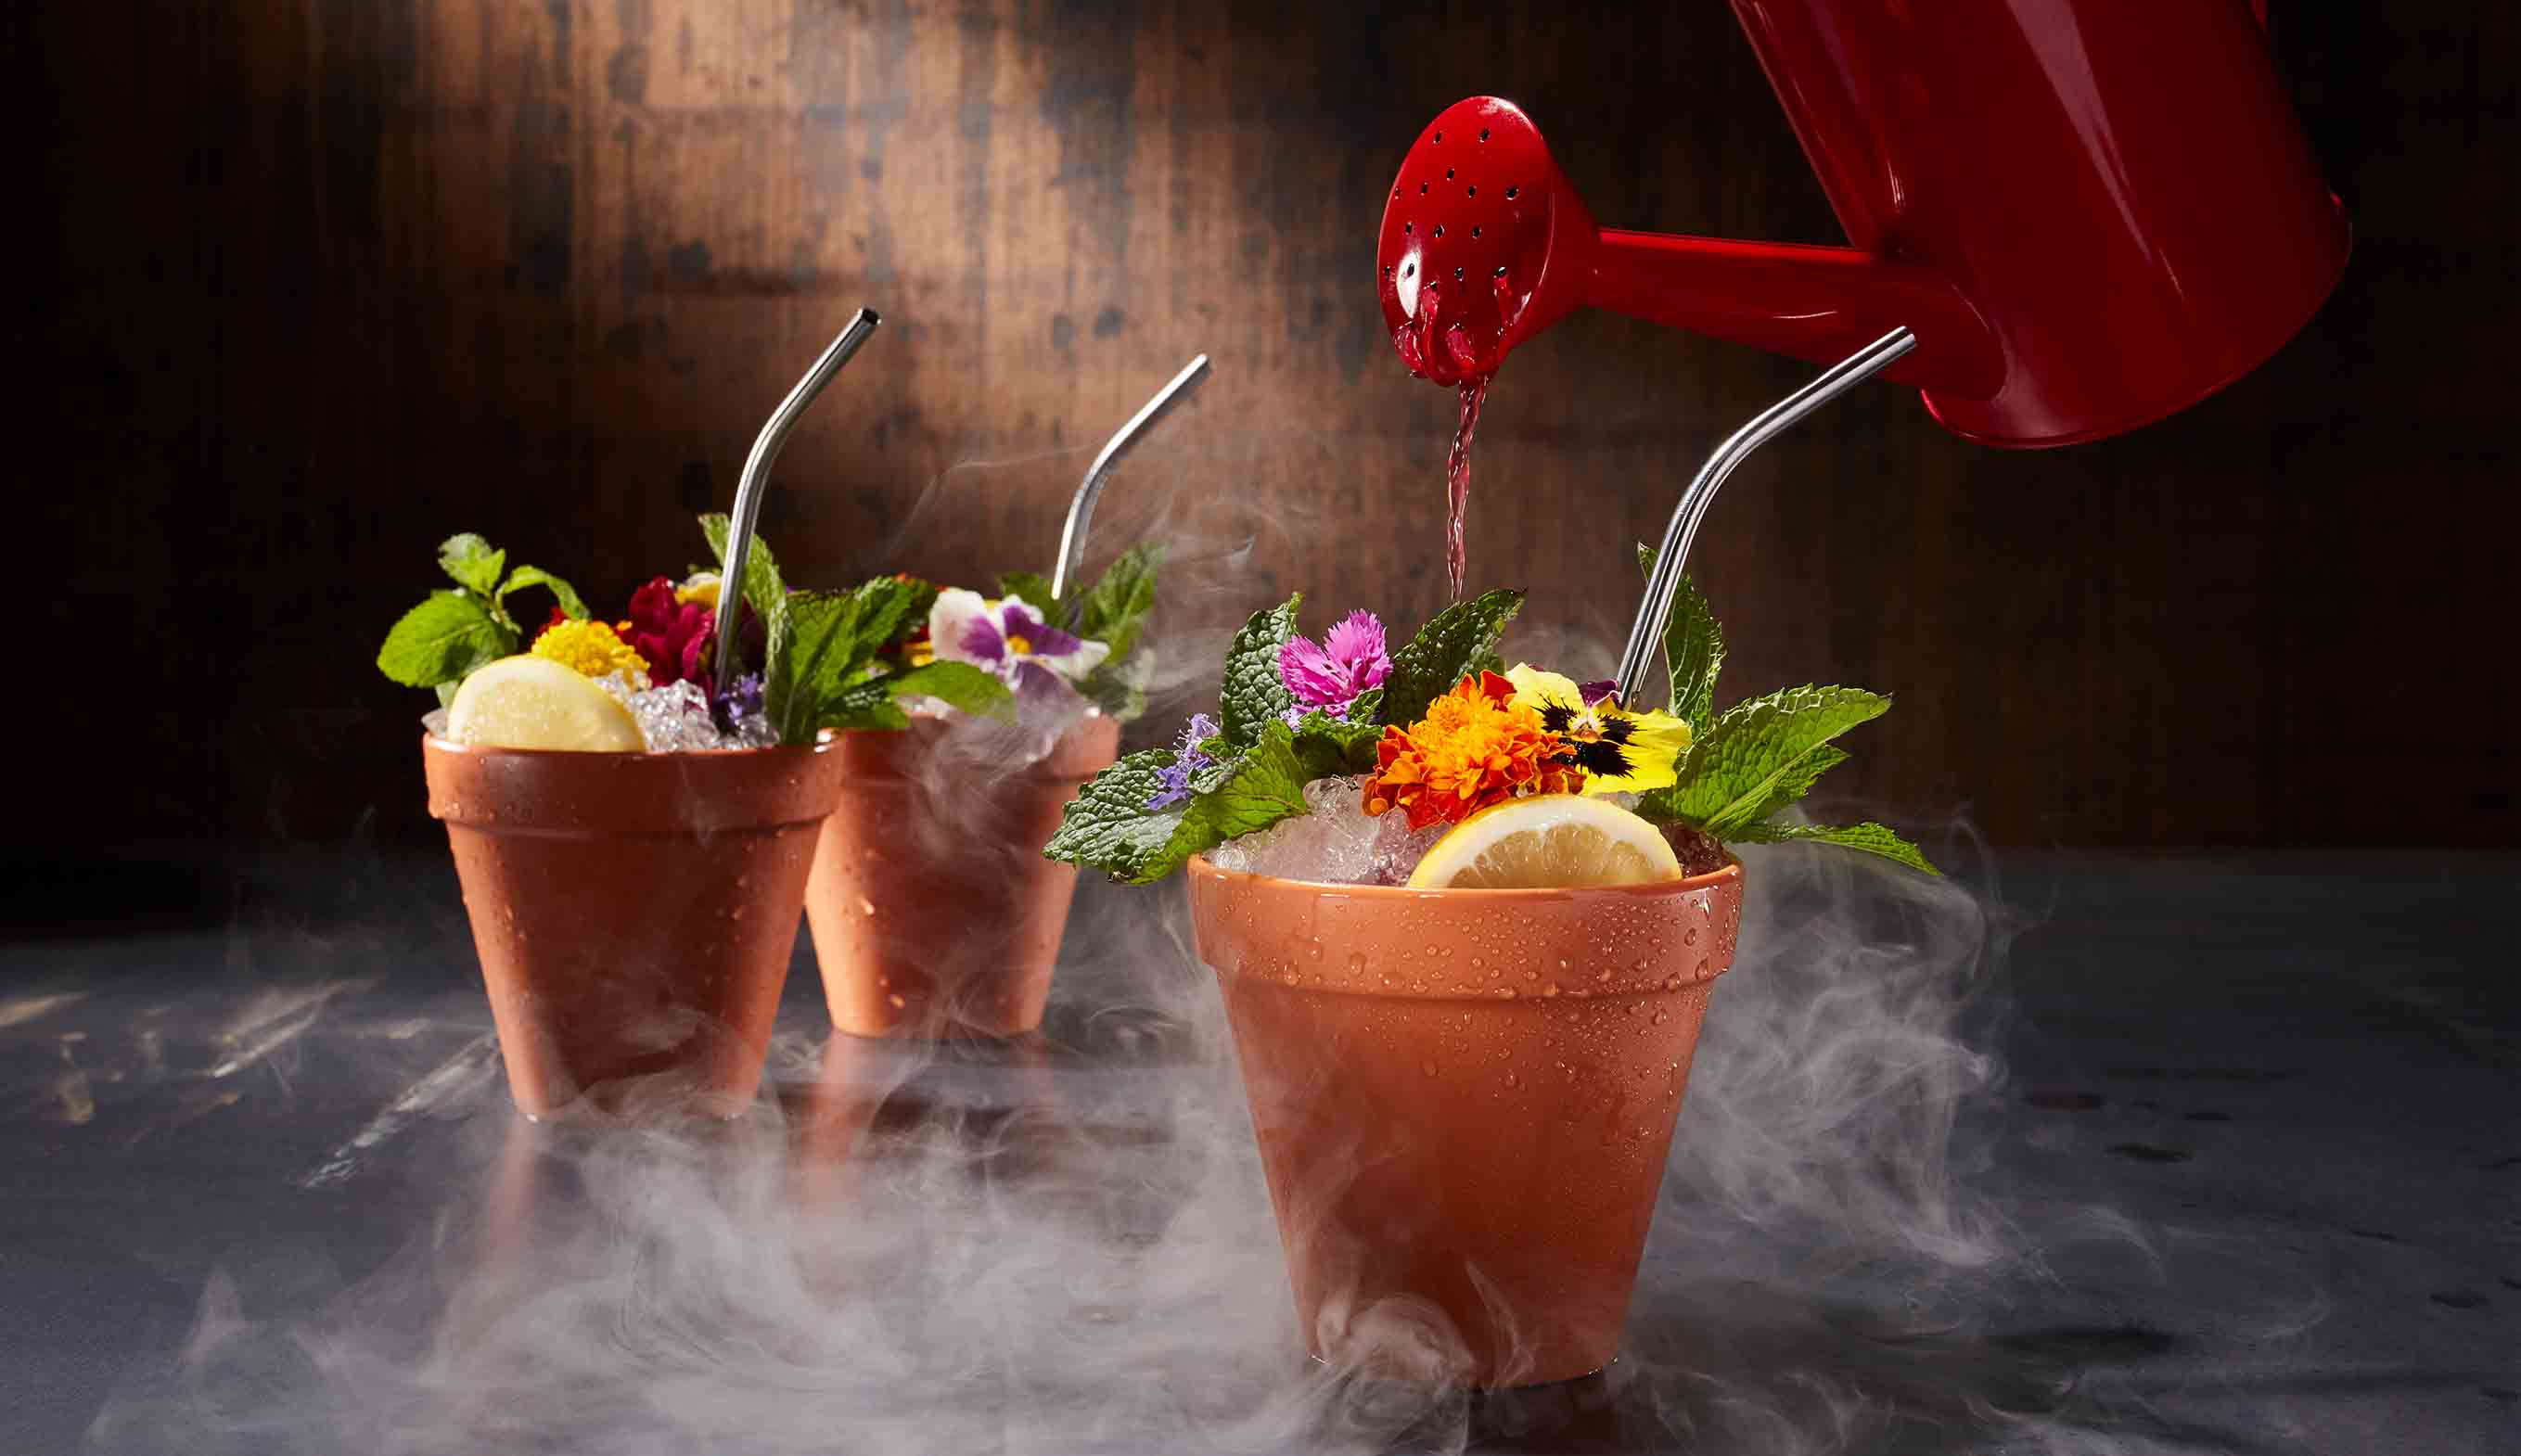 Yardbird Flower Pot